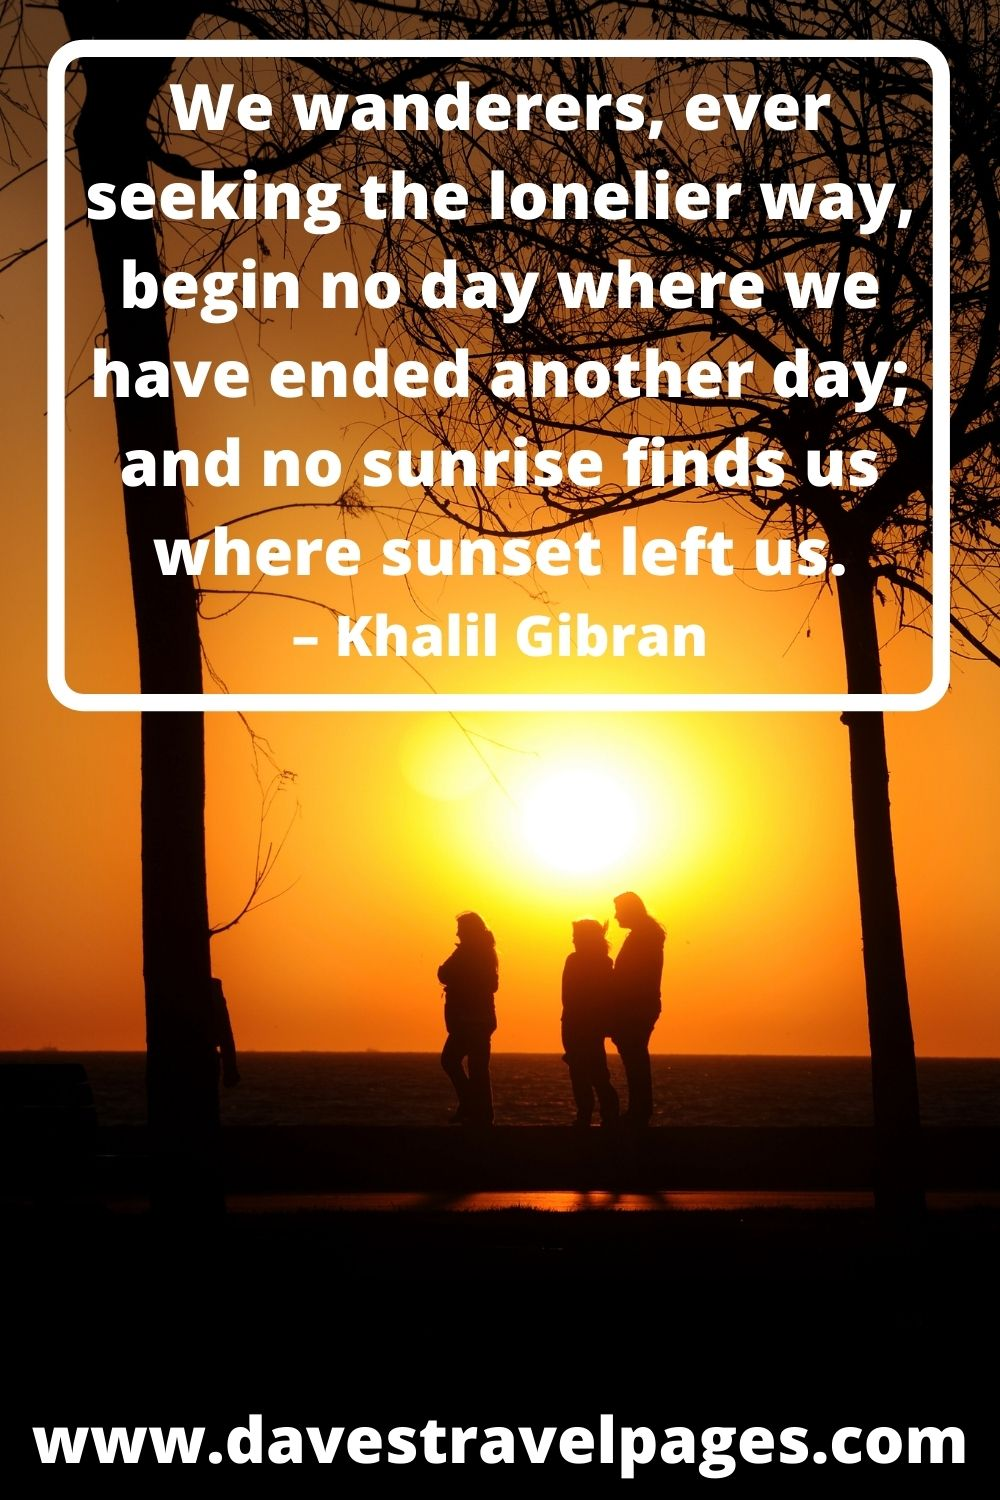 We wanderers, ever seeking the lonelier way, begin no day where we have ended another day; and no sunrise finds us where sunset left us. – Khalil Gibran